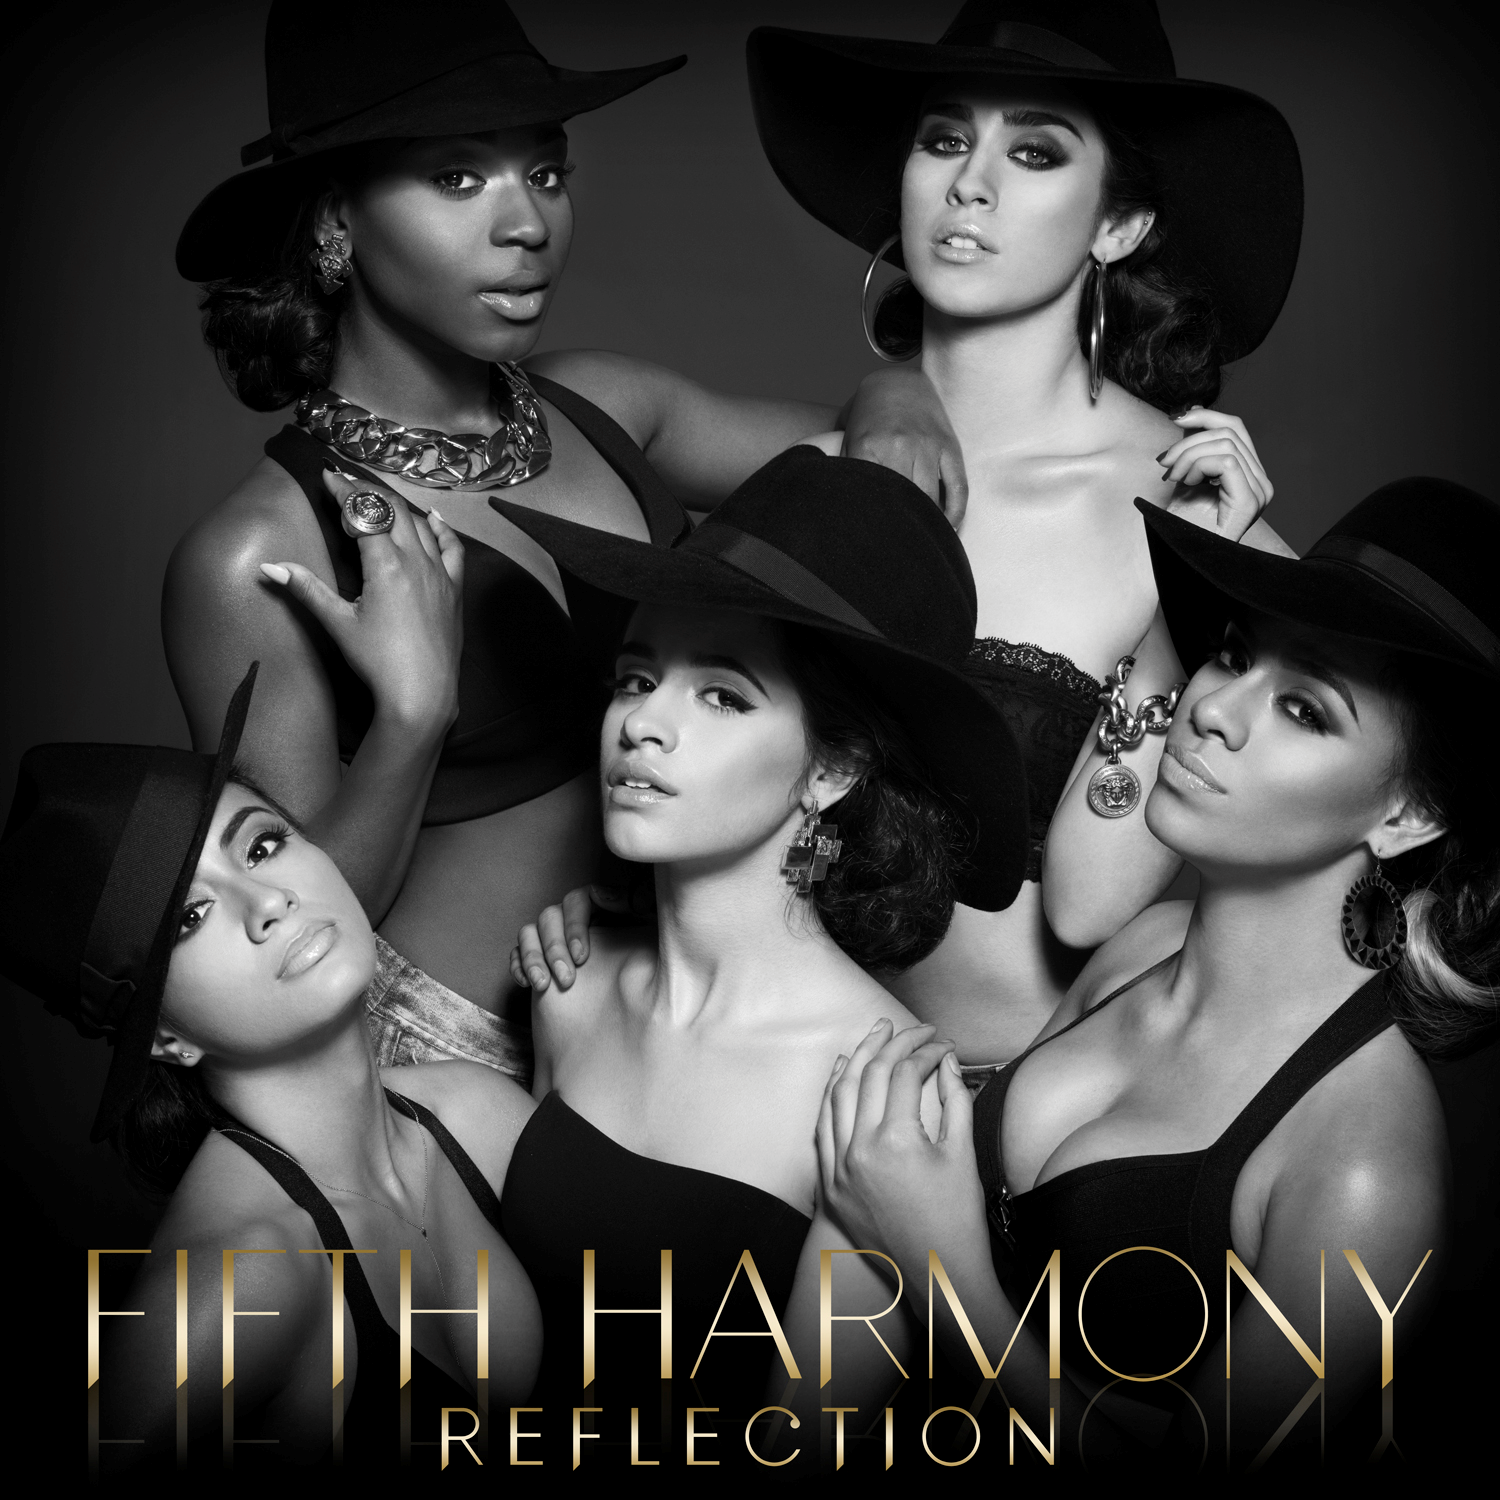 Repost Worthy 1 Year Ago Today : ItsNotYouItsMe Album Spin - Fifth Harmony